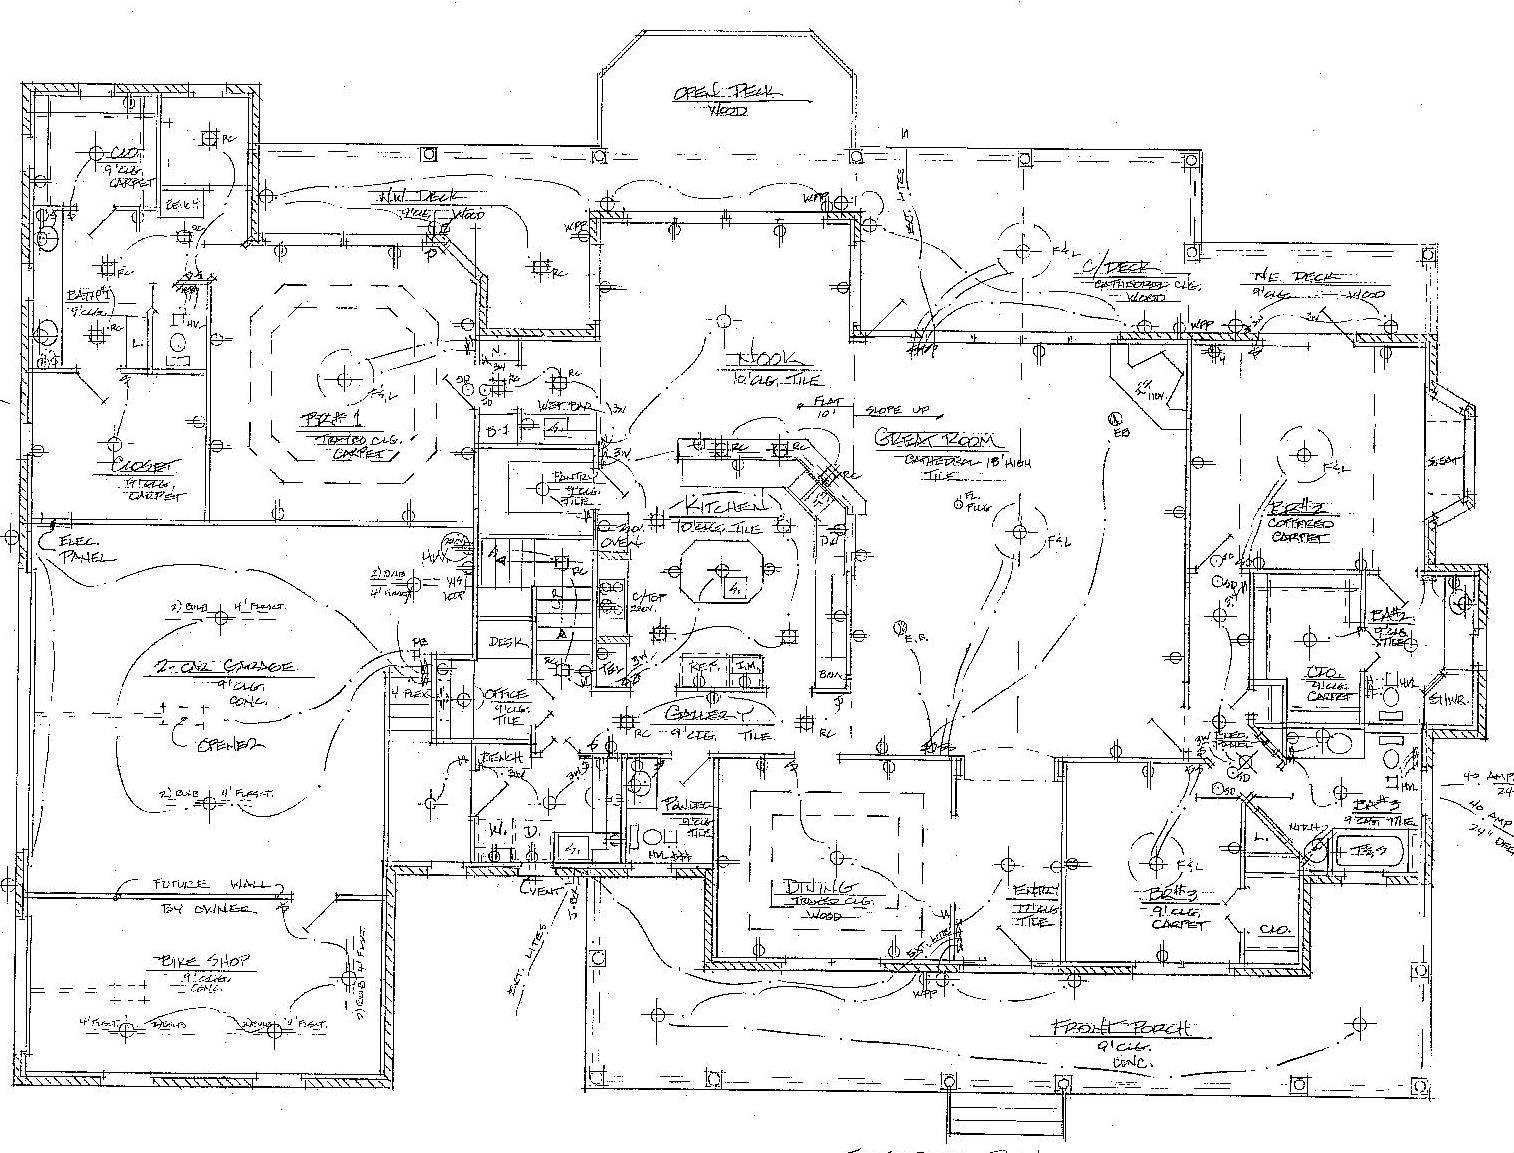 House Electrical Wiring Floor Plan Besides Restaurant House Plans 44731